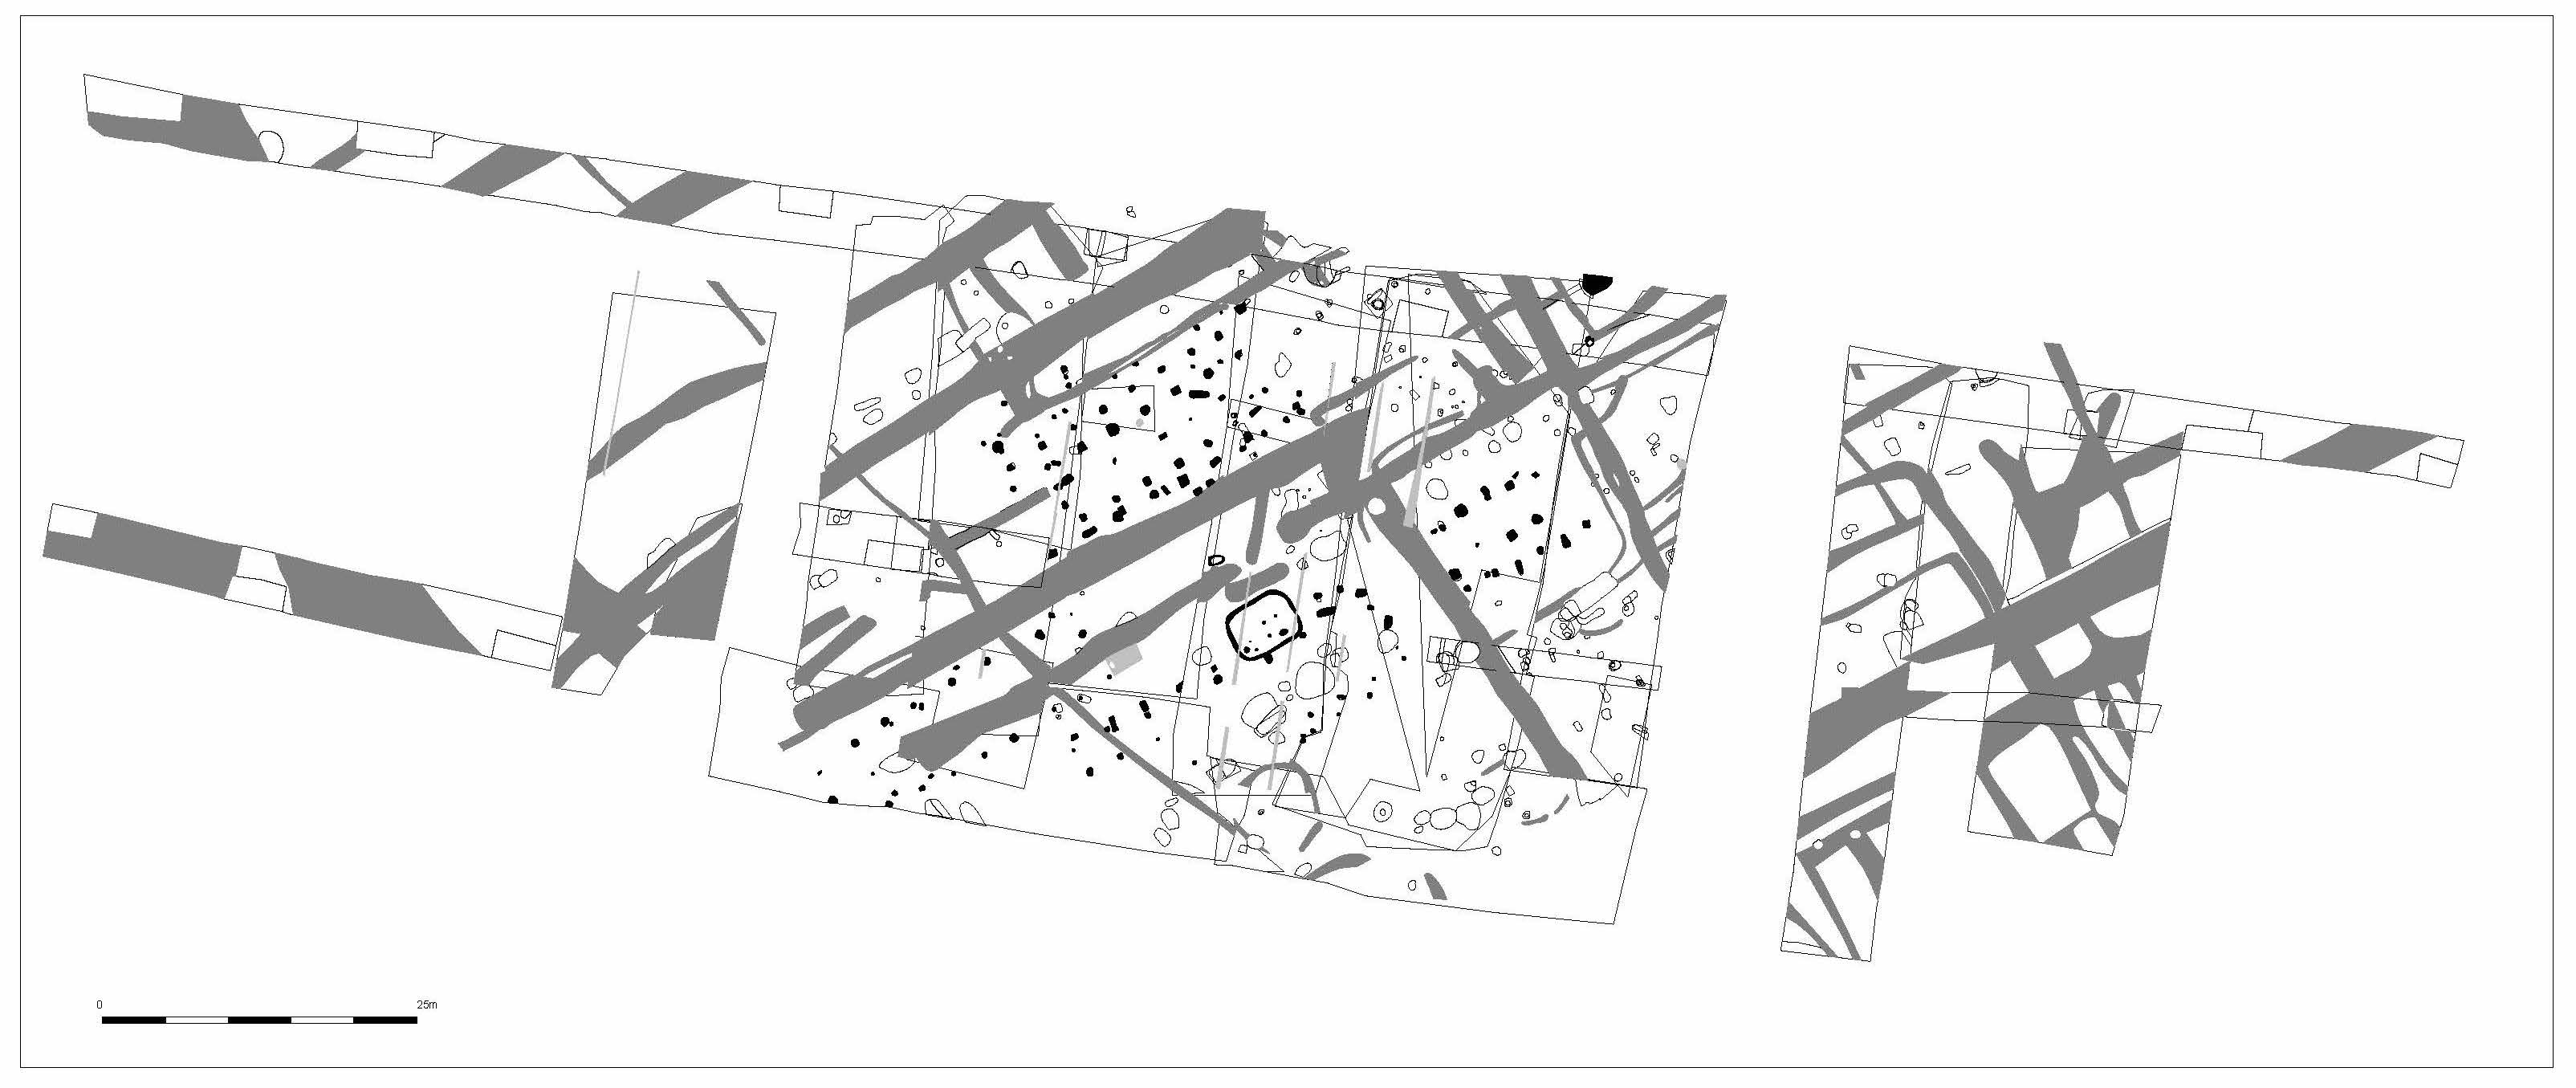 Map of the area created during the excavation process. Students get access to the file so they can inspect the structure of the area in more detail after the experience.